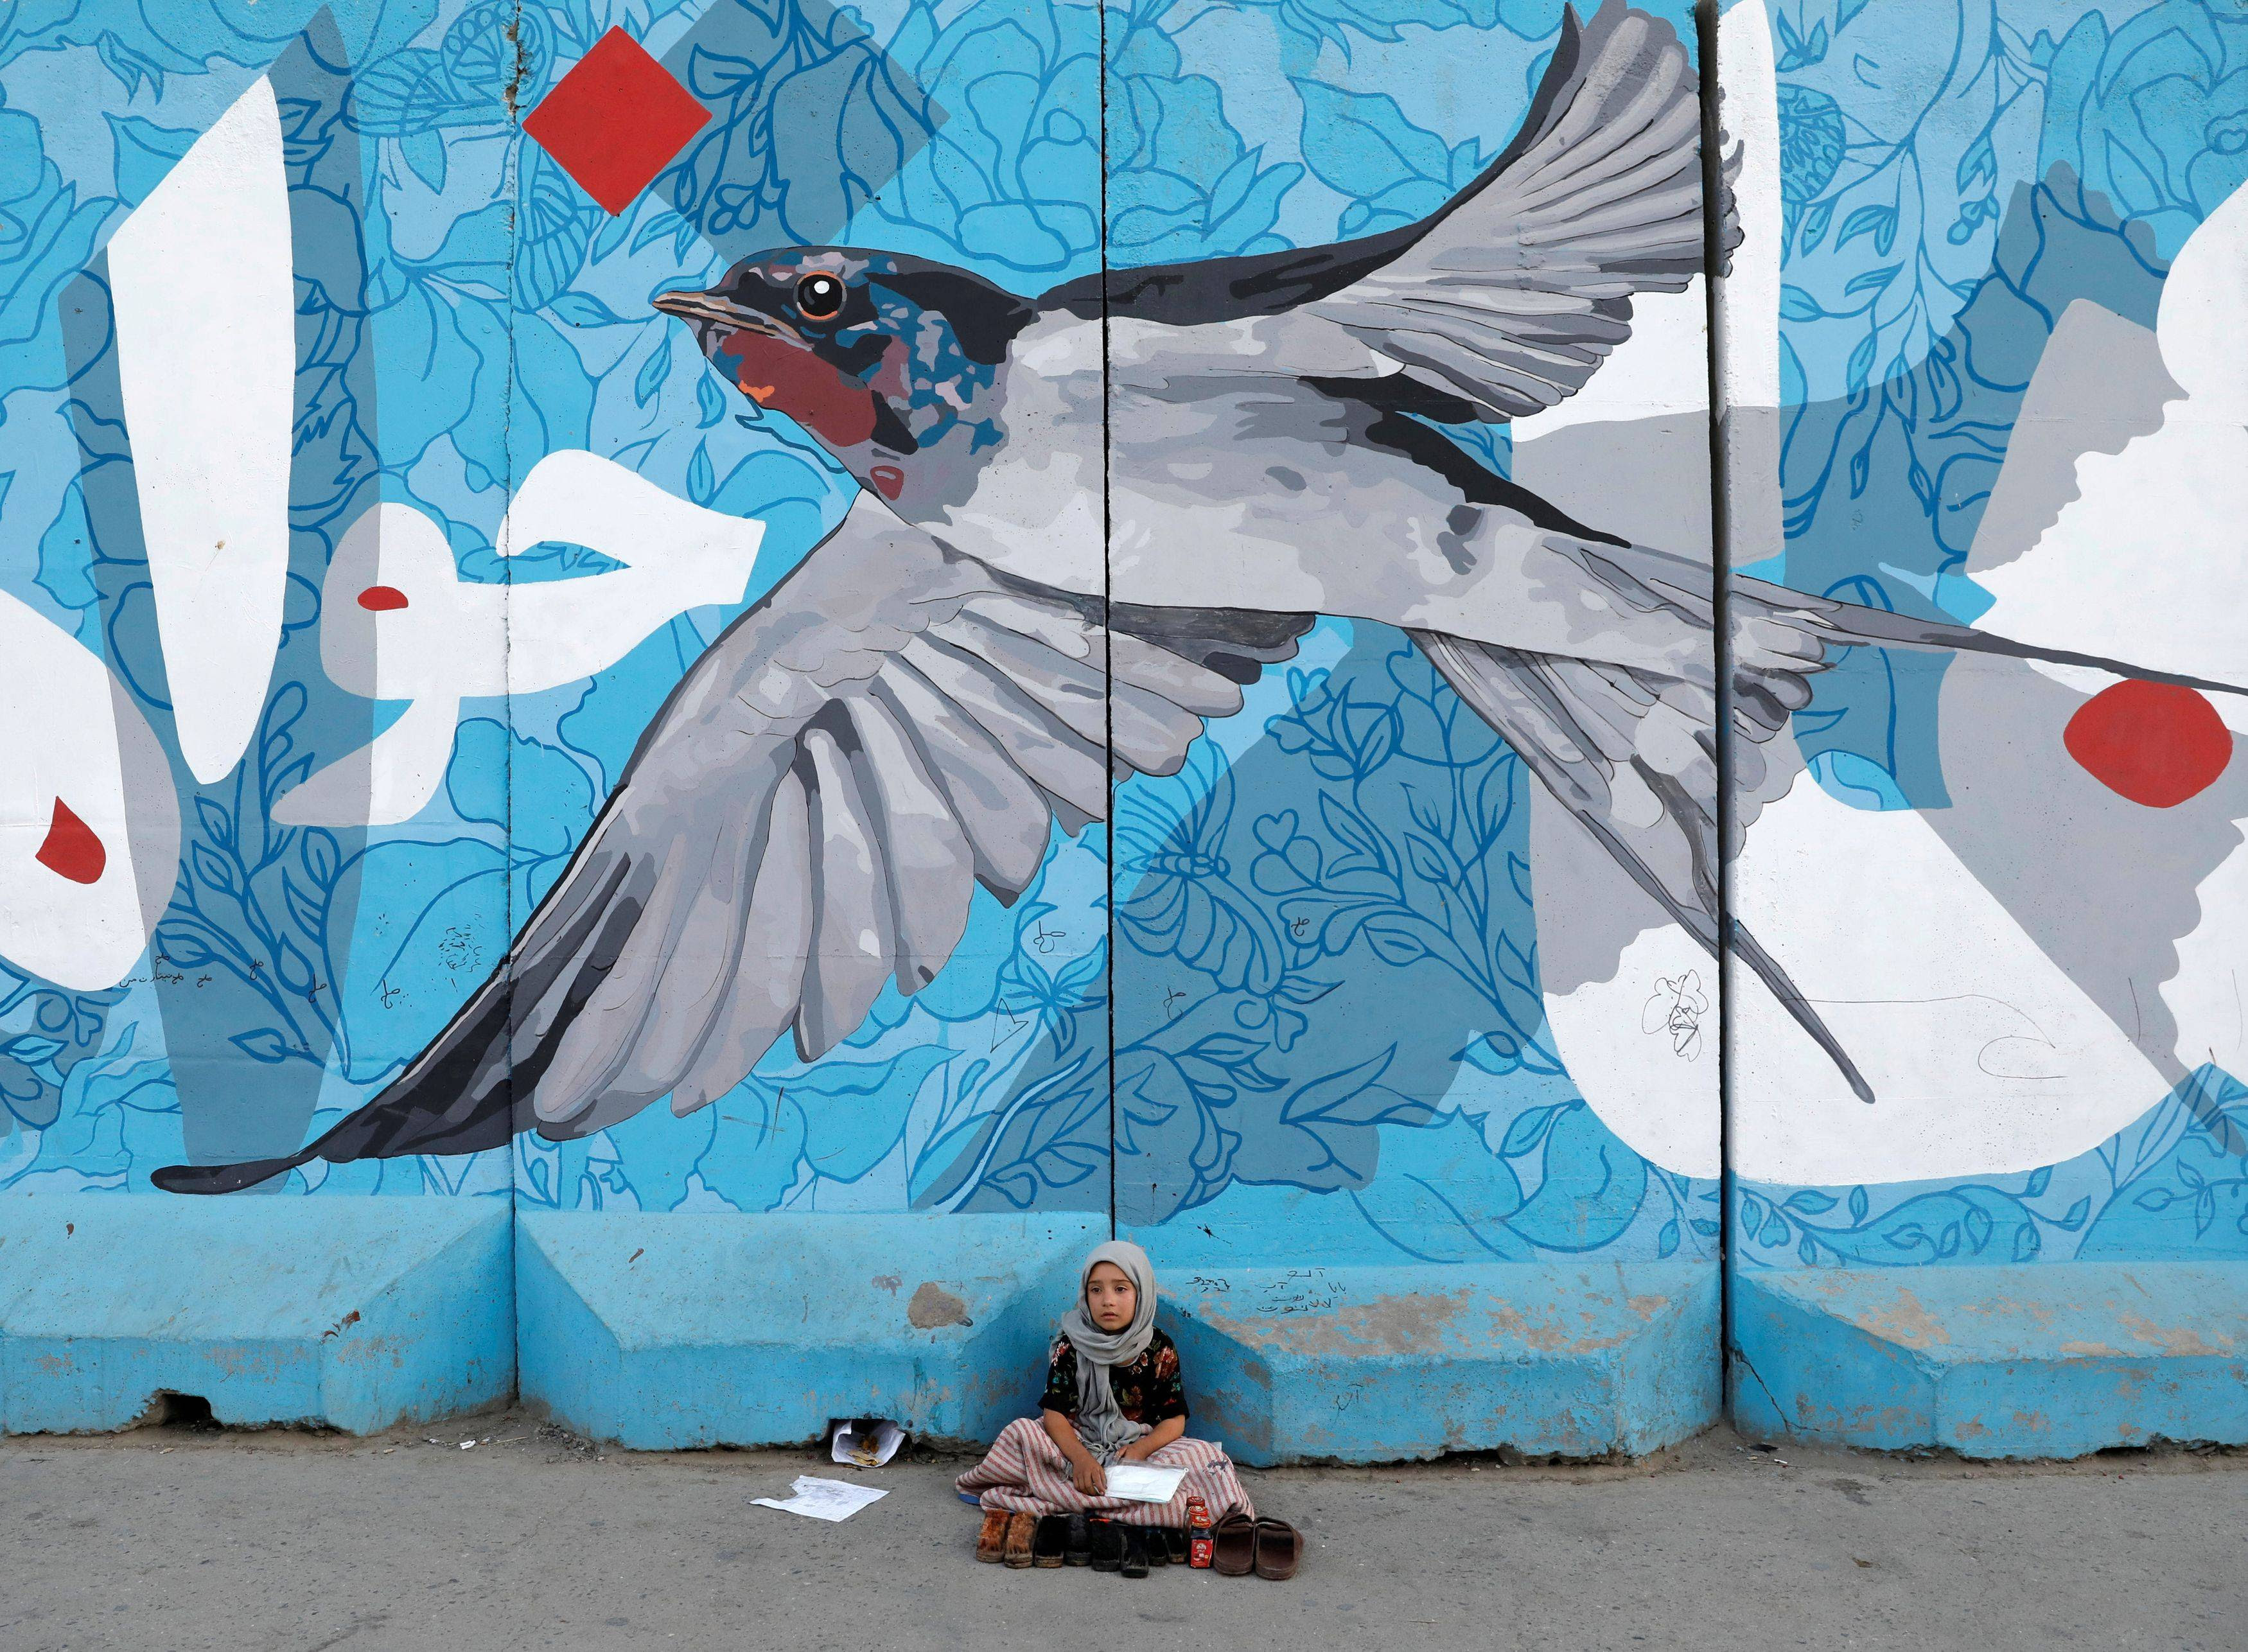 A girl who polishes shoes waits for customers under graffiti on a wall in Kabul on June 24, 2021. (Reuters)